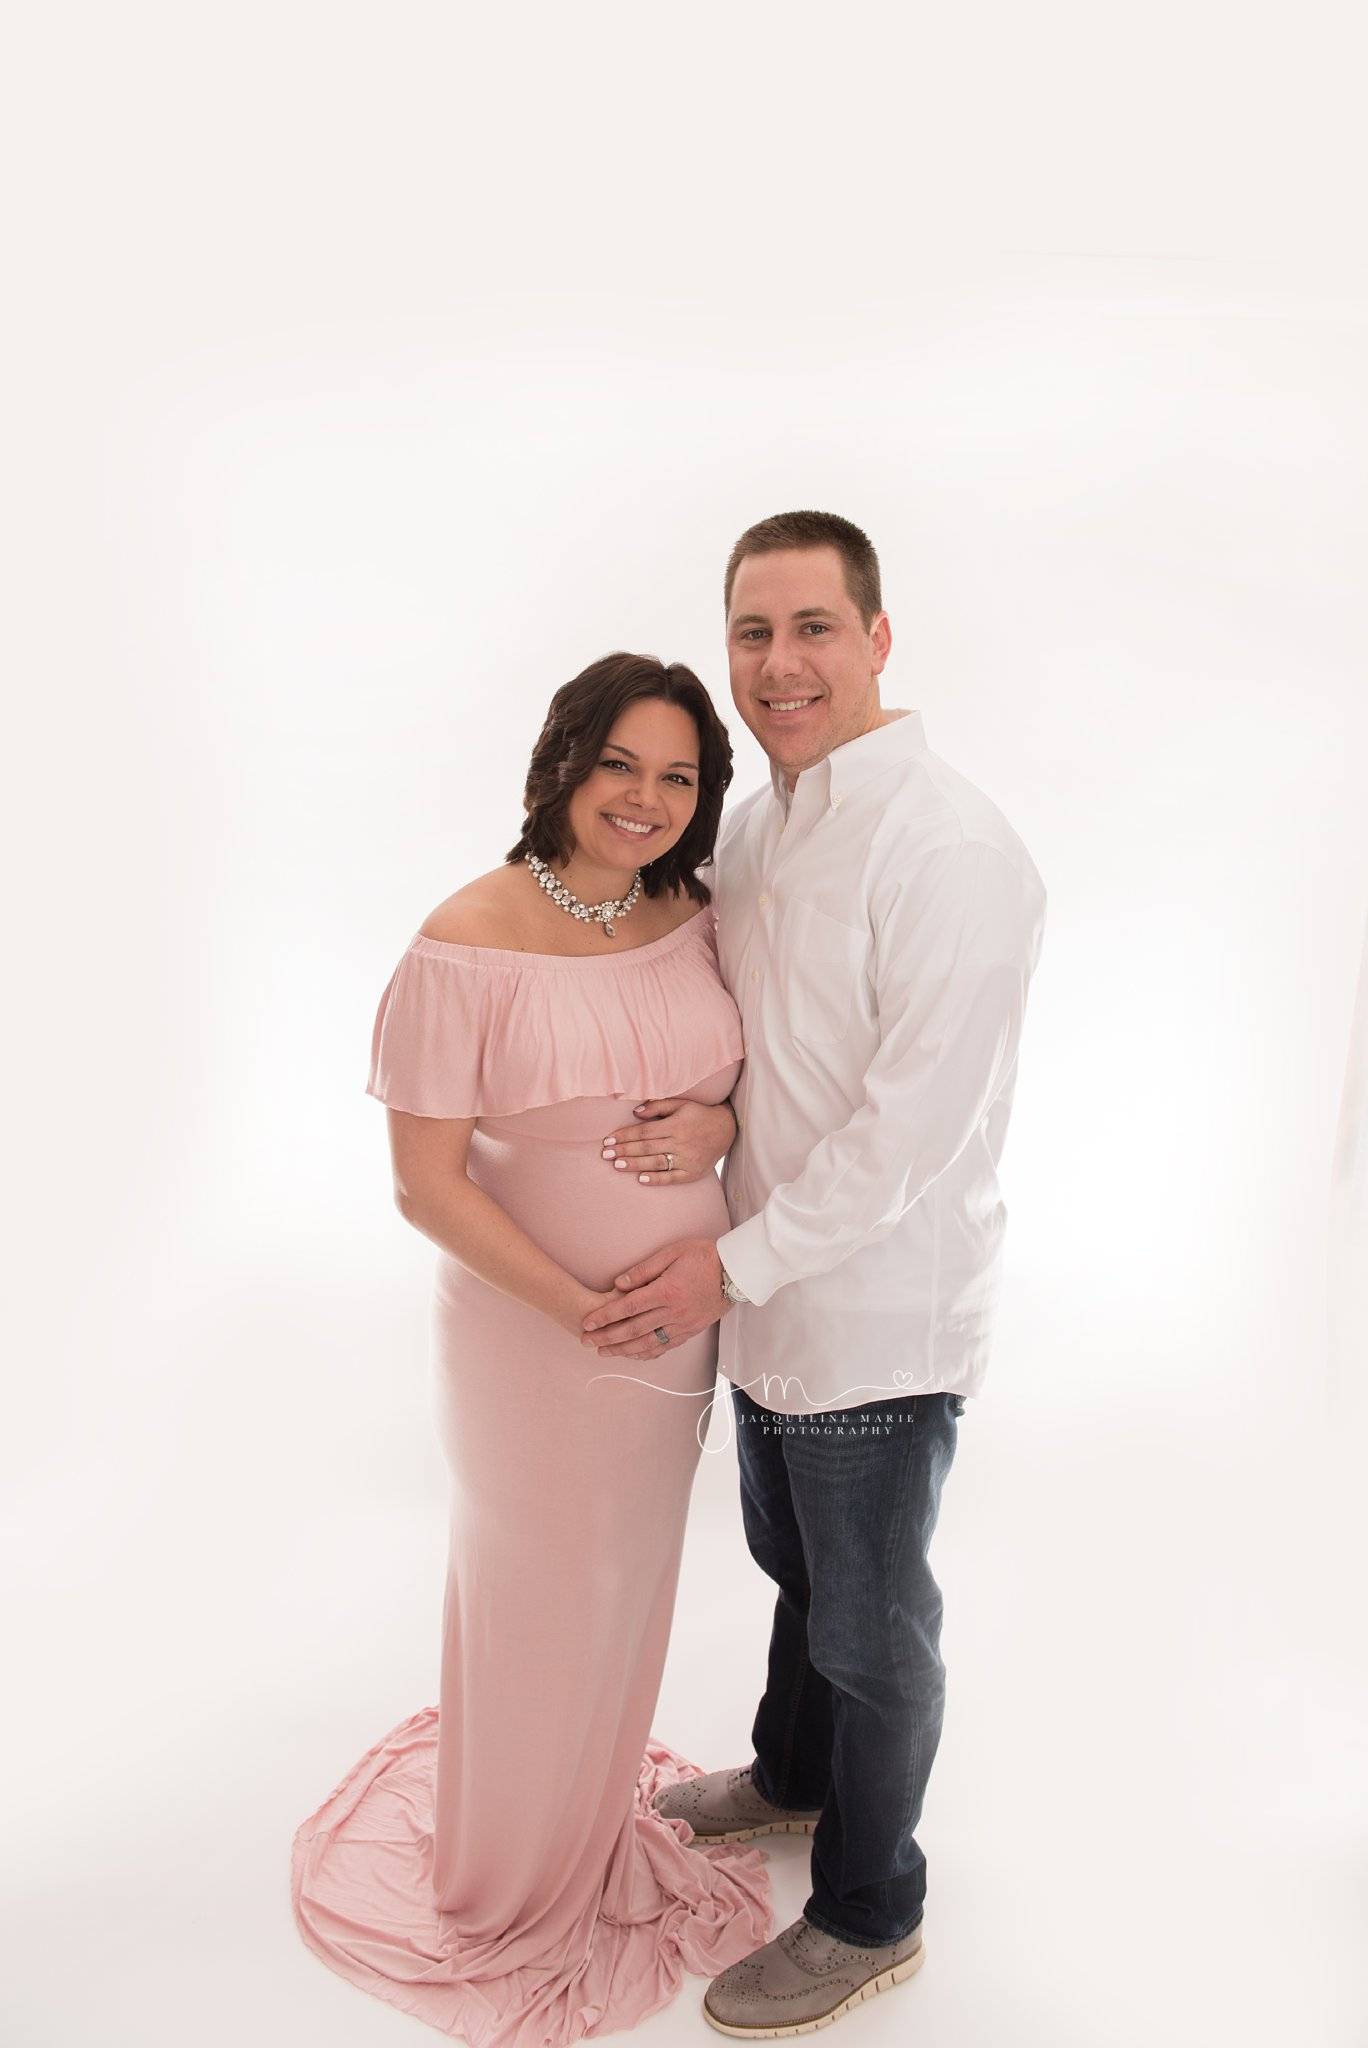 soon to be parents smile with happiness as in columbus ohio photography studio for maternity pictures